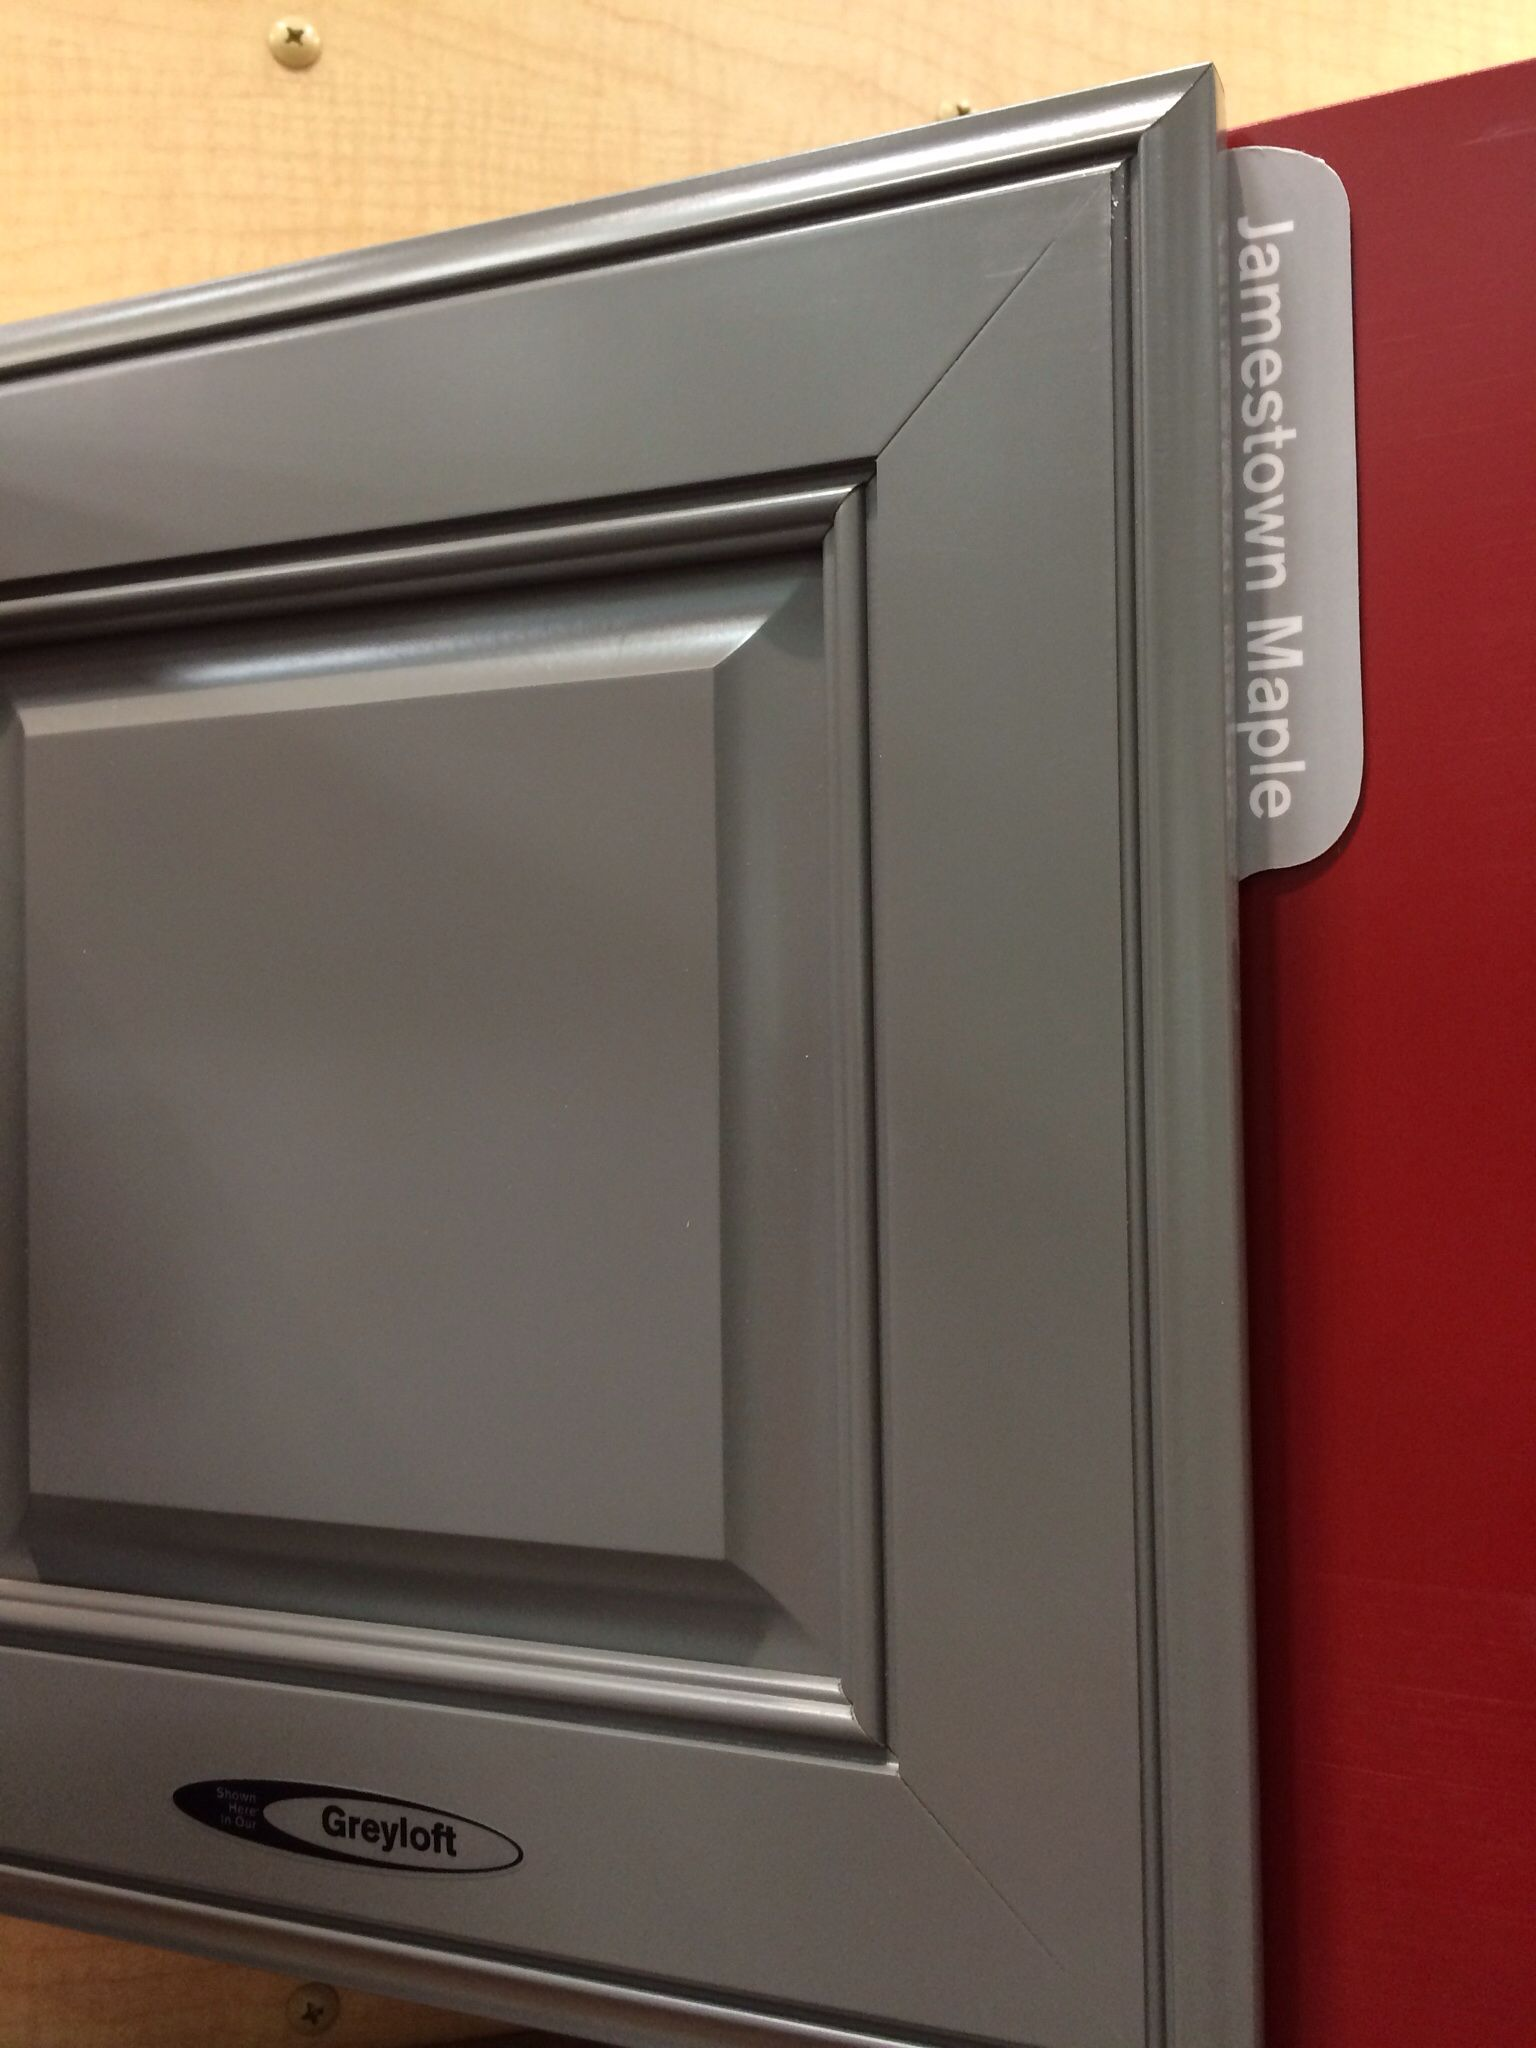 Kraftmaid Greyloft Cabinets Lowes Bathroom Renos, Master Bathrooms,  Painting Kitchen Cabinets, Cabinet Colors